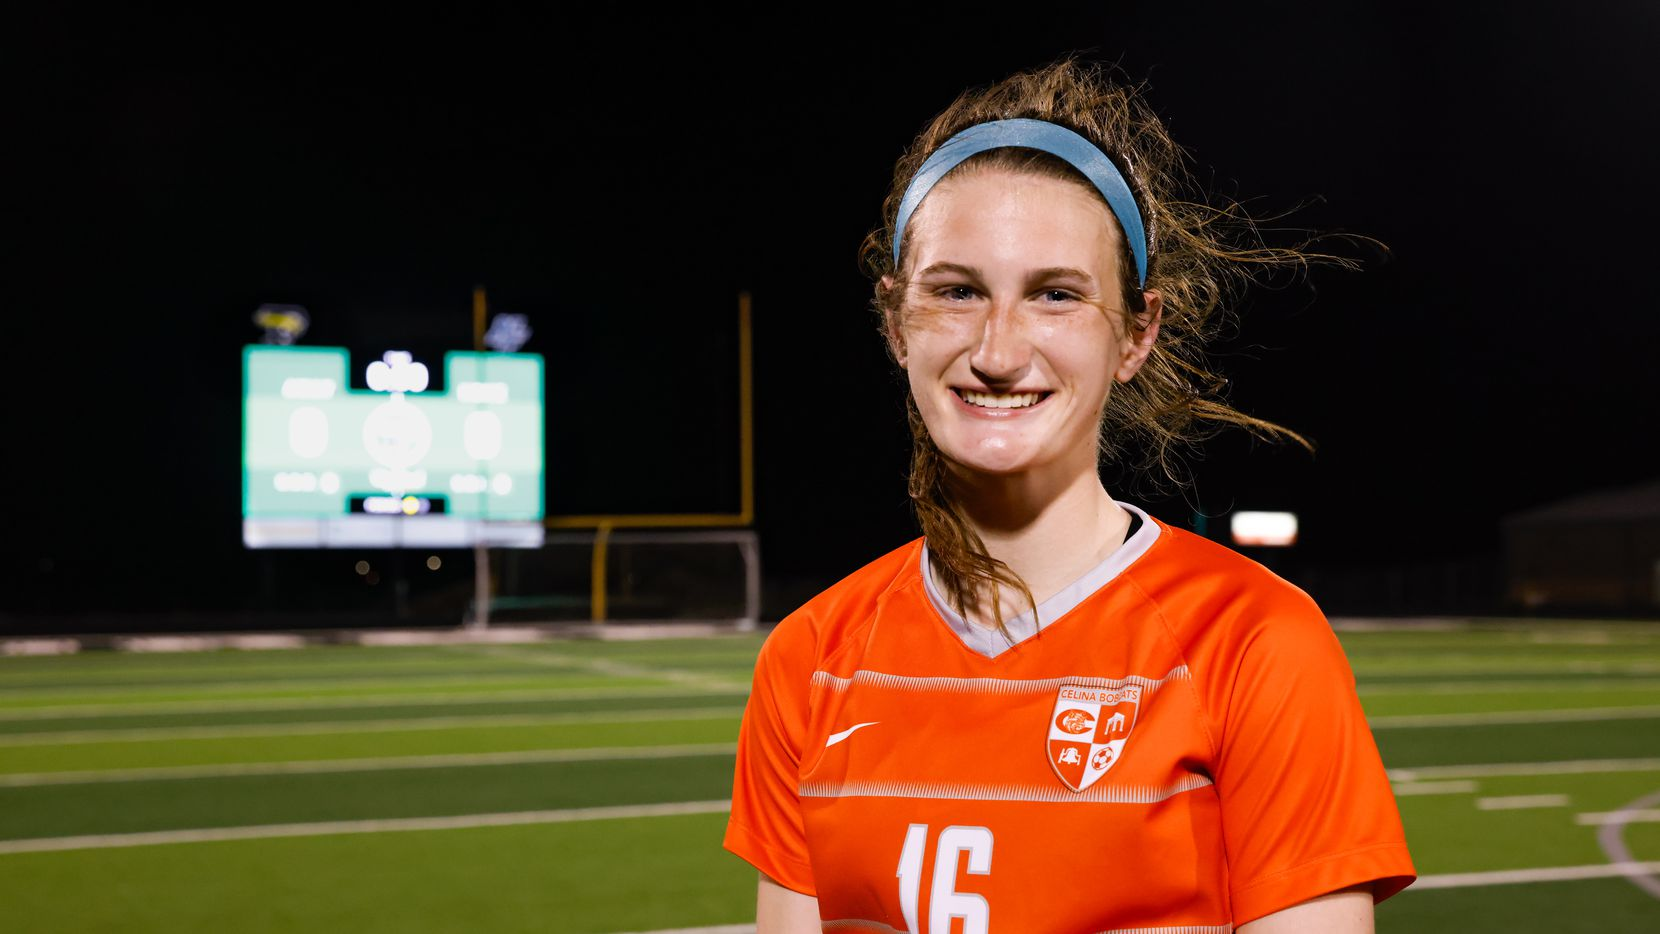 Celina's Taylor Zdrojewski (16) poses for a photo following her team's 7-0 win over Bullard during a girl's Class 4A Region II semifinal soccer match in Forney on Tuesday, April 6, 2021. Zdrojewski broke the all-time state record for most goals in a season during this game.